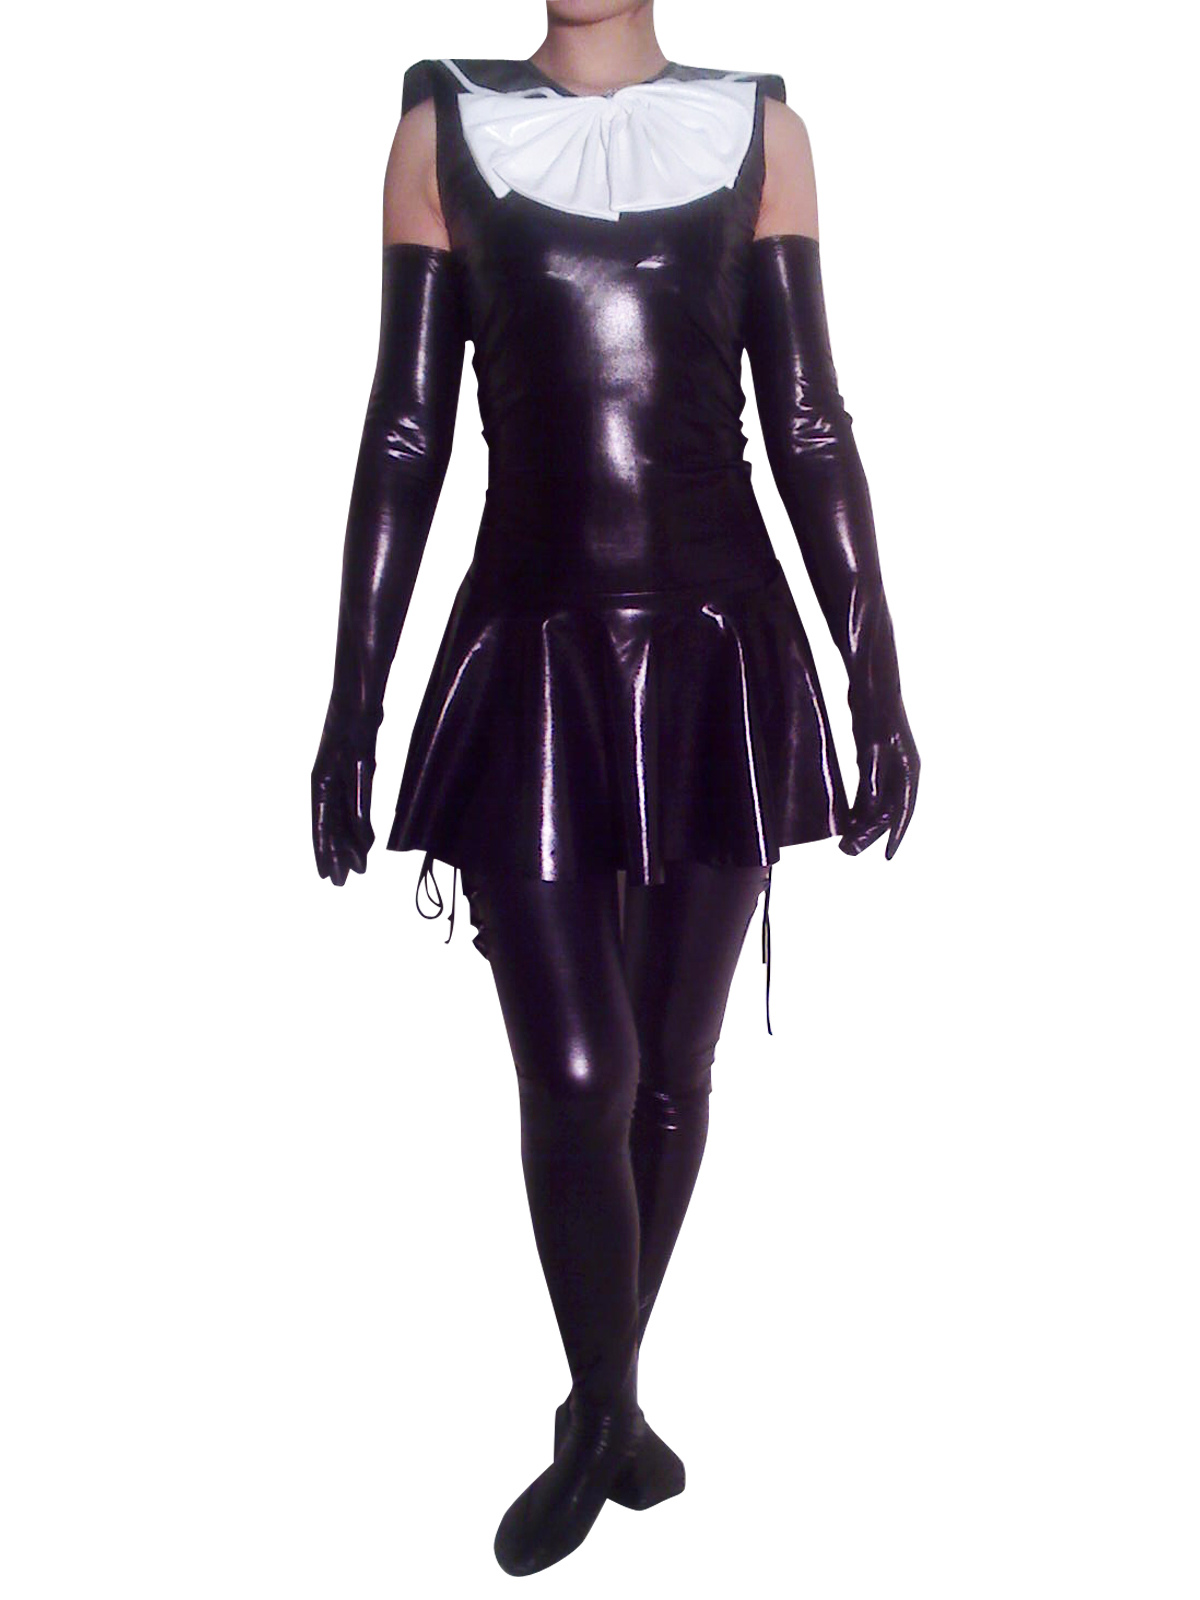 Halloween Maid Shiny Metallic Catsuit With Shoulder Length Gloves And Stockings